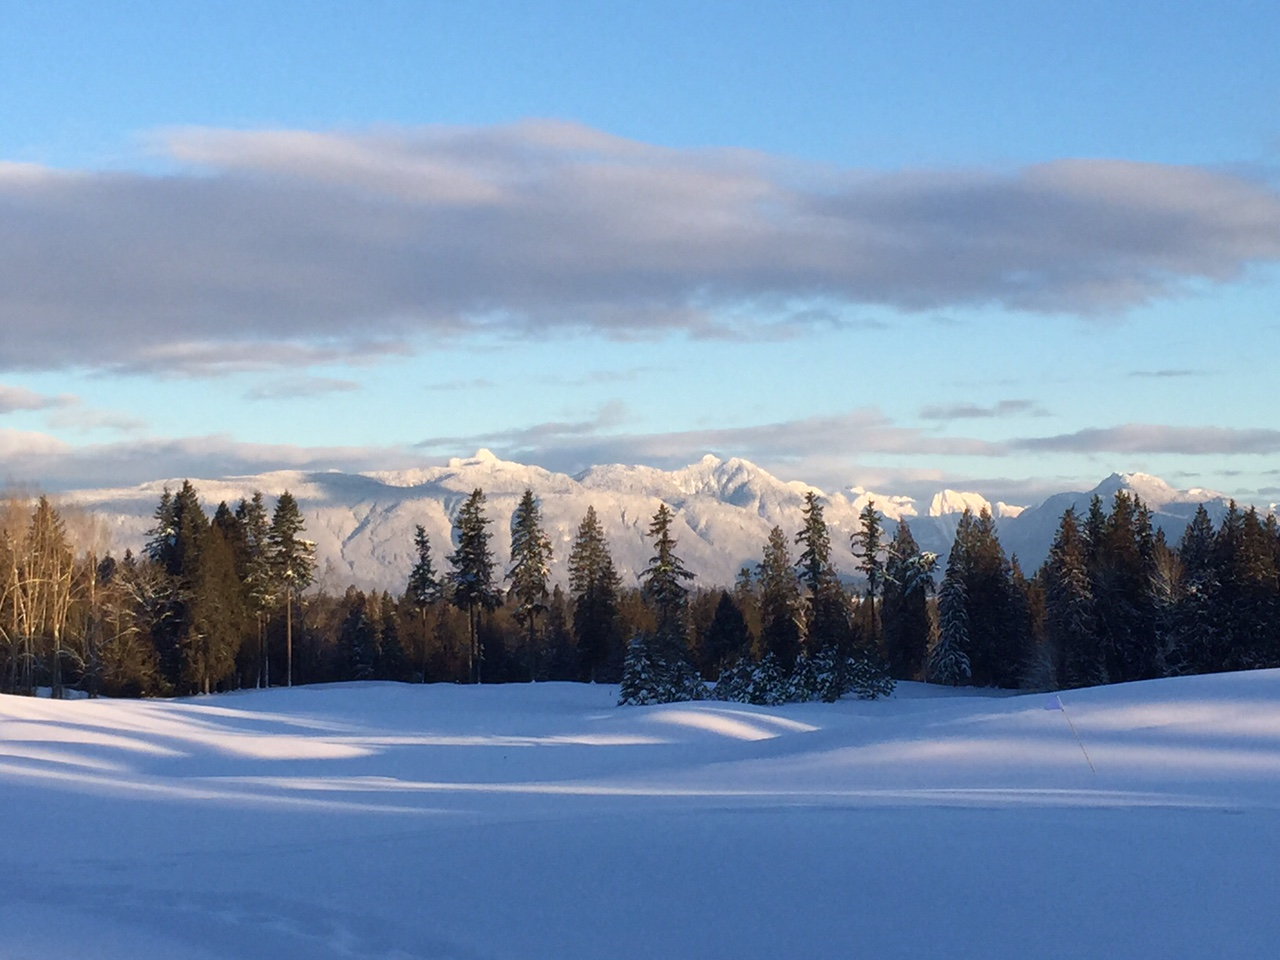 Snow covered golf course in Langley, BC